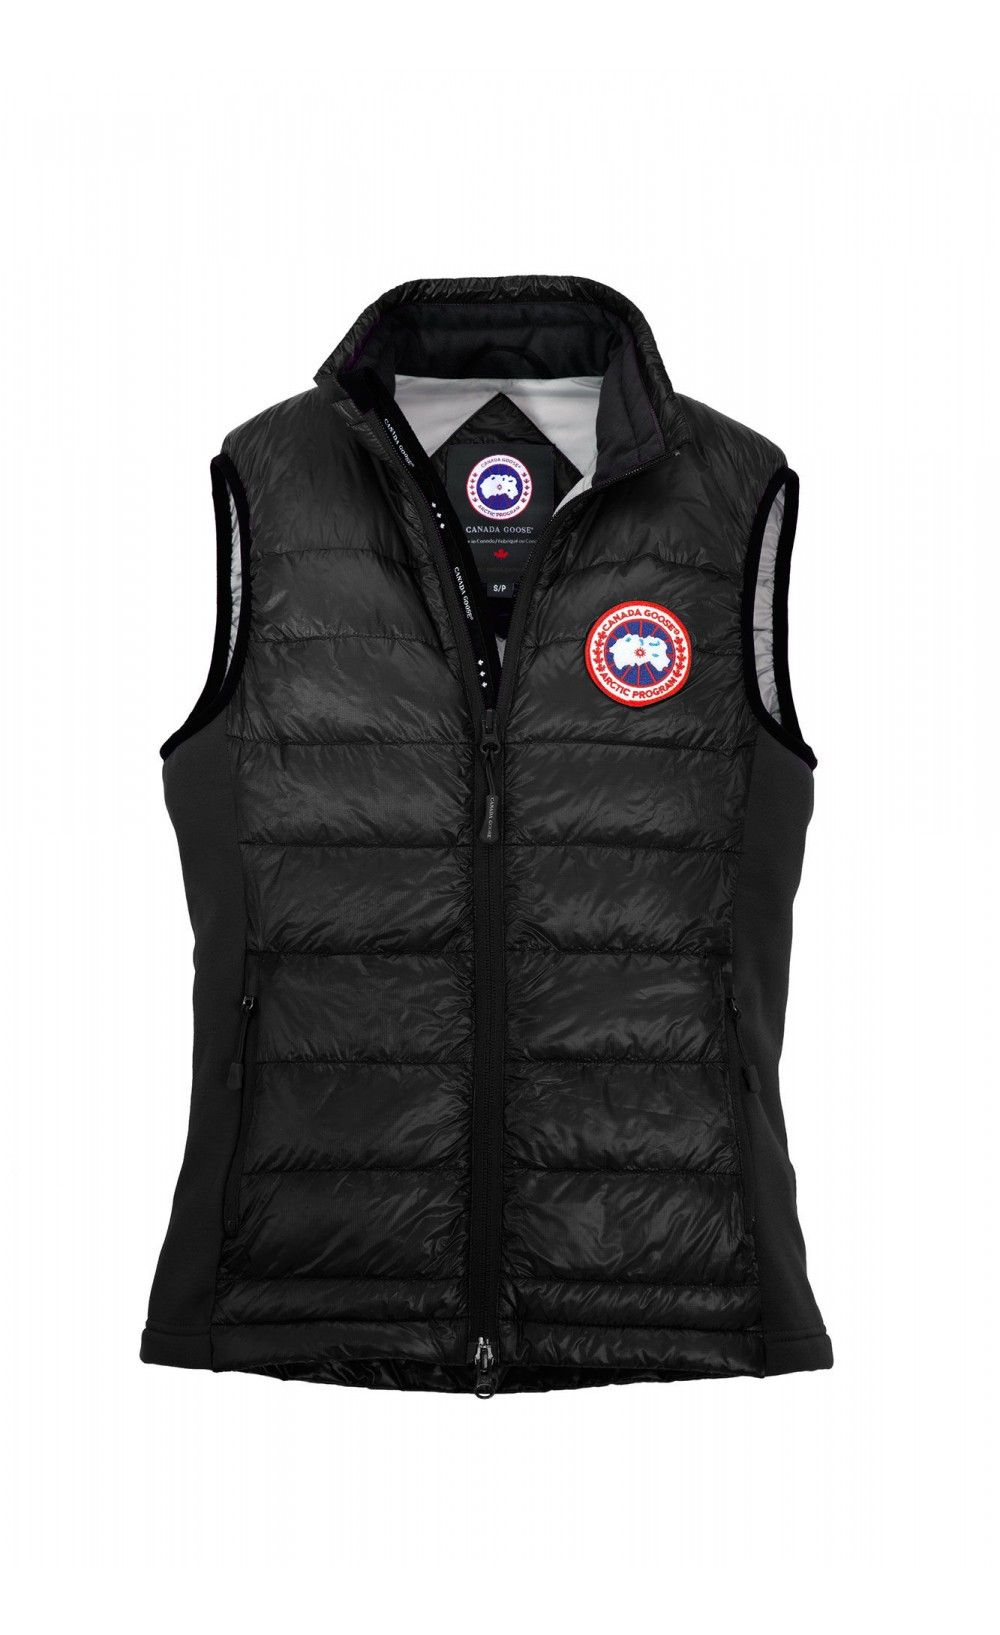 Canada Goose HyBridge Lite Vest Black Women - Canada Goose  canadagoose   women  parka  jacket  winter  christmas  gifts  christmasgifts  fashion   lifestyle 0a8d814fc8